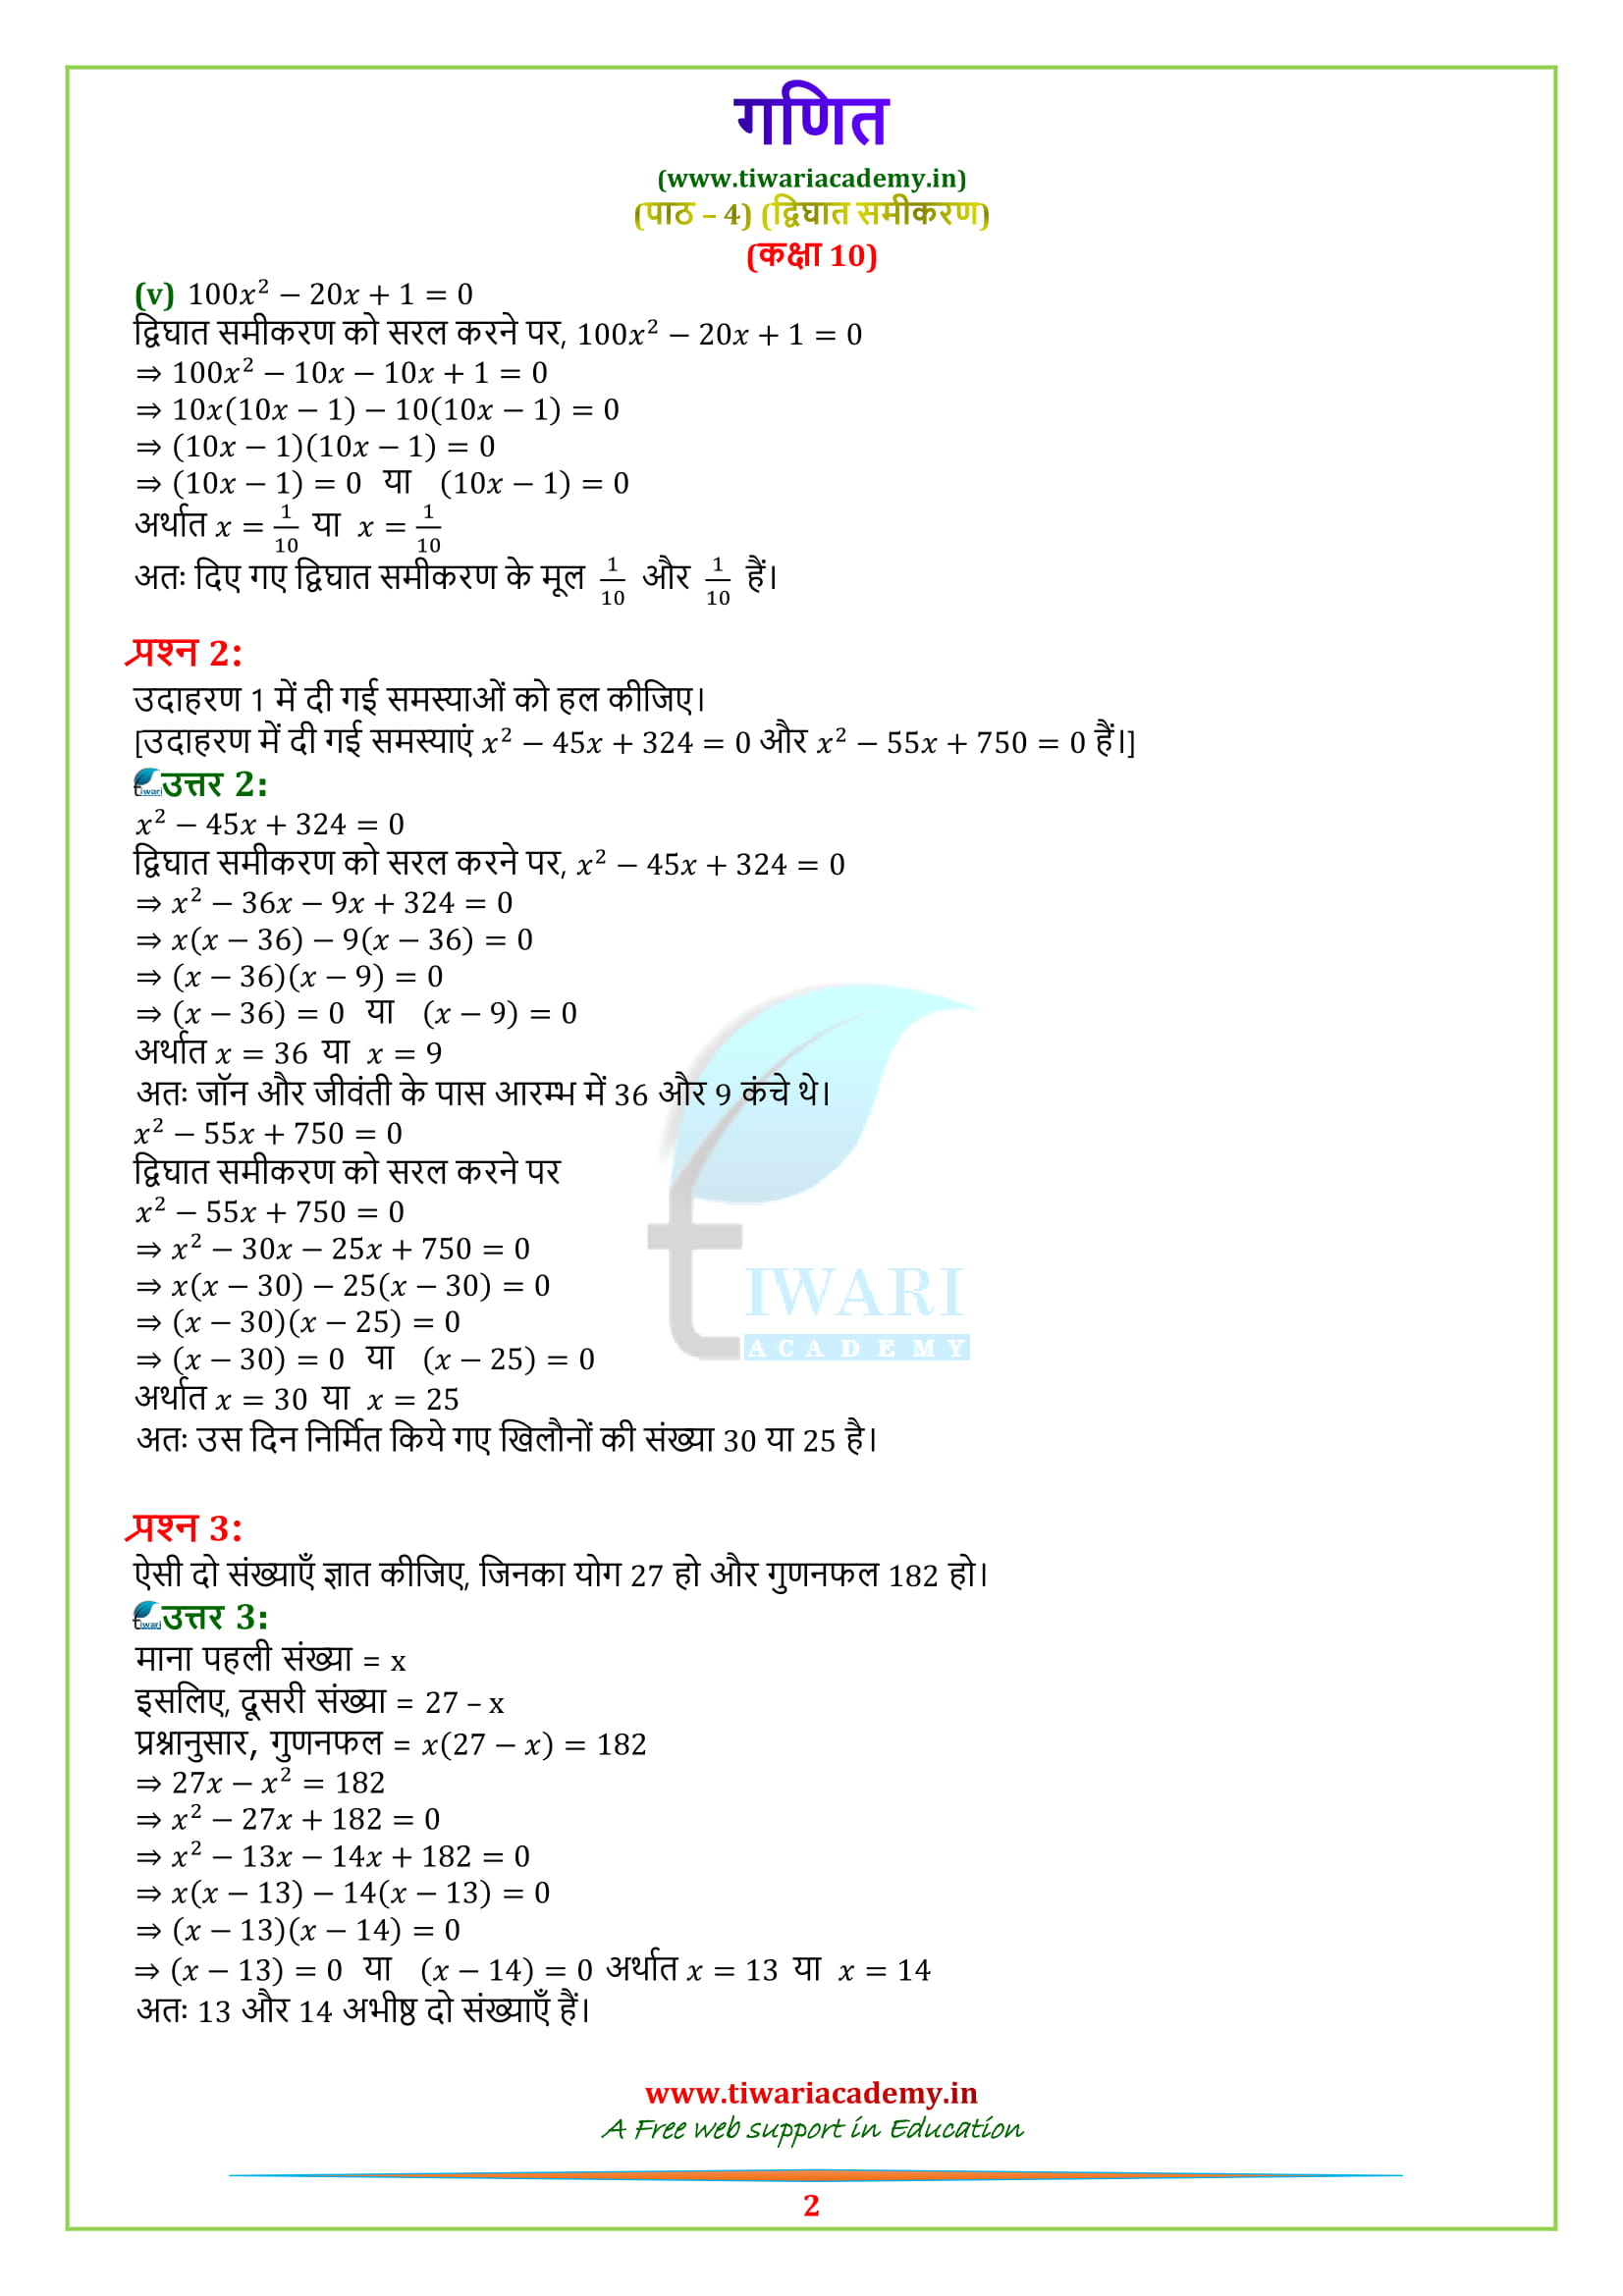 NCERT Solutions for 10 maths exercise 4.2 in hindi medium